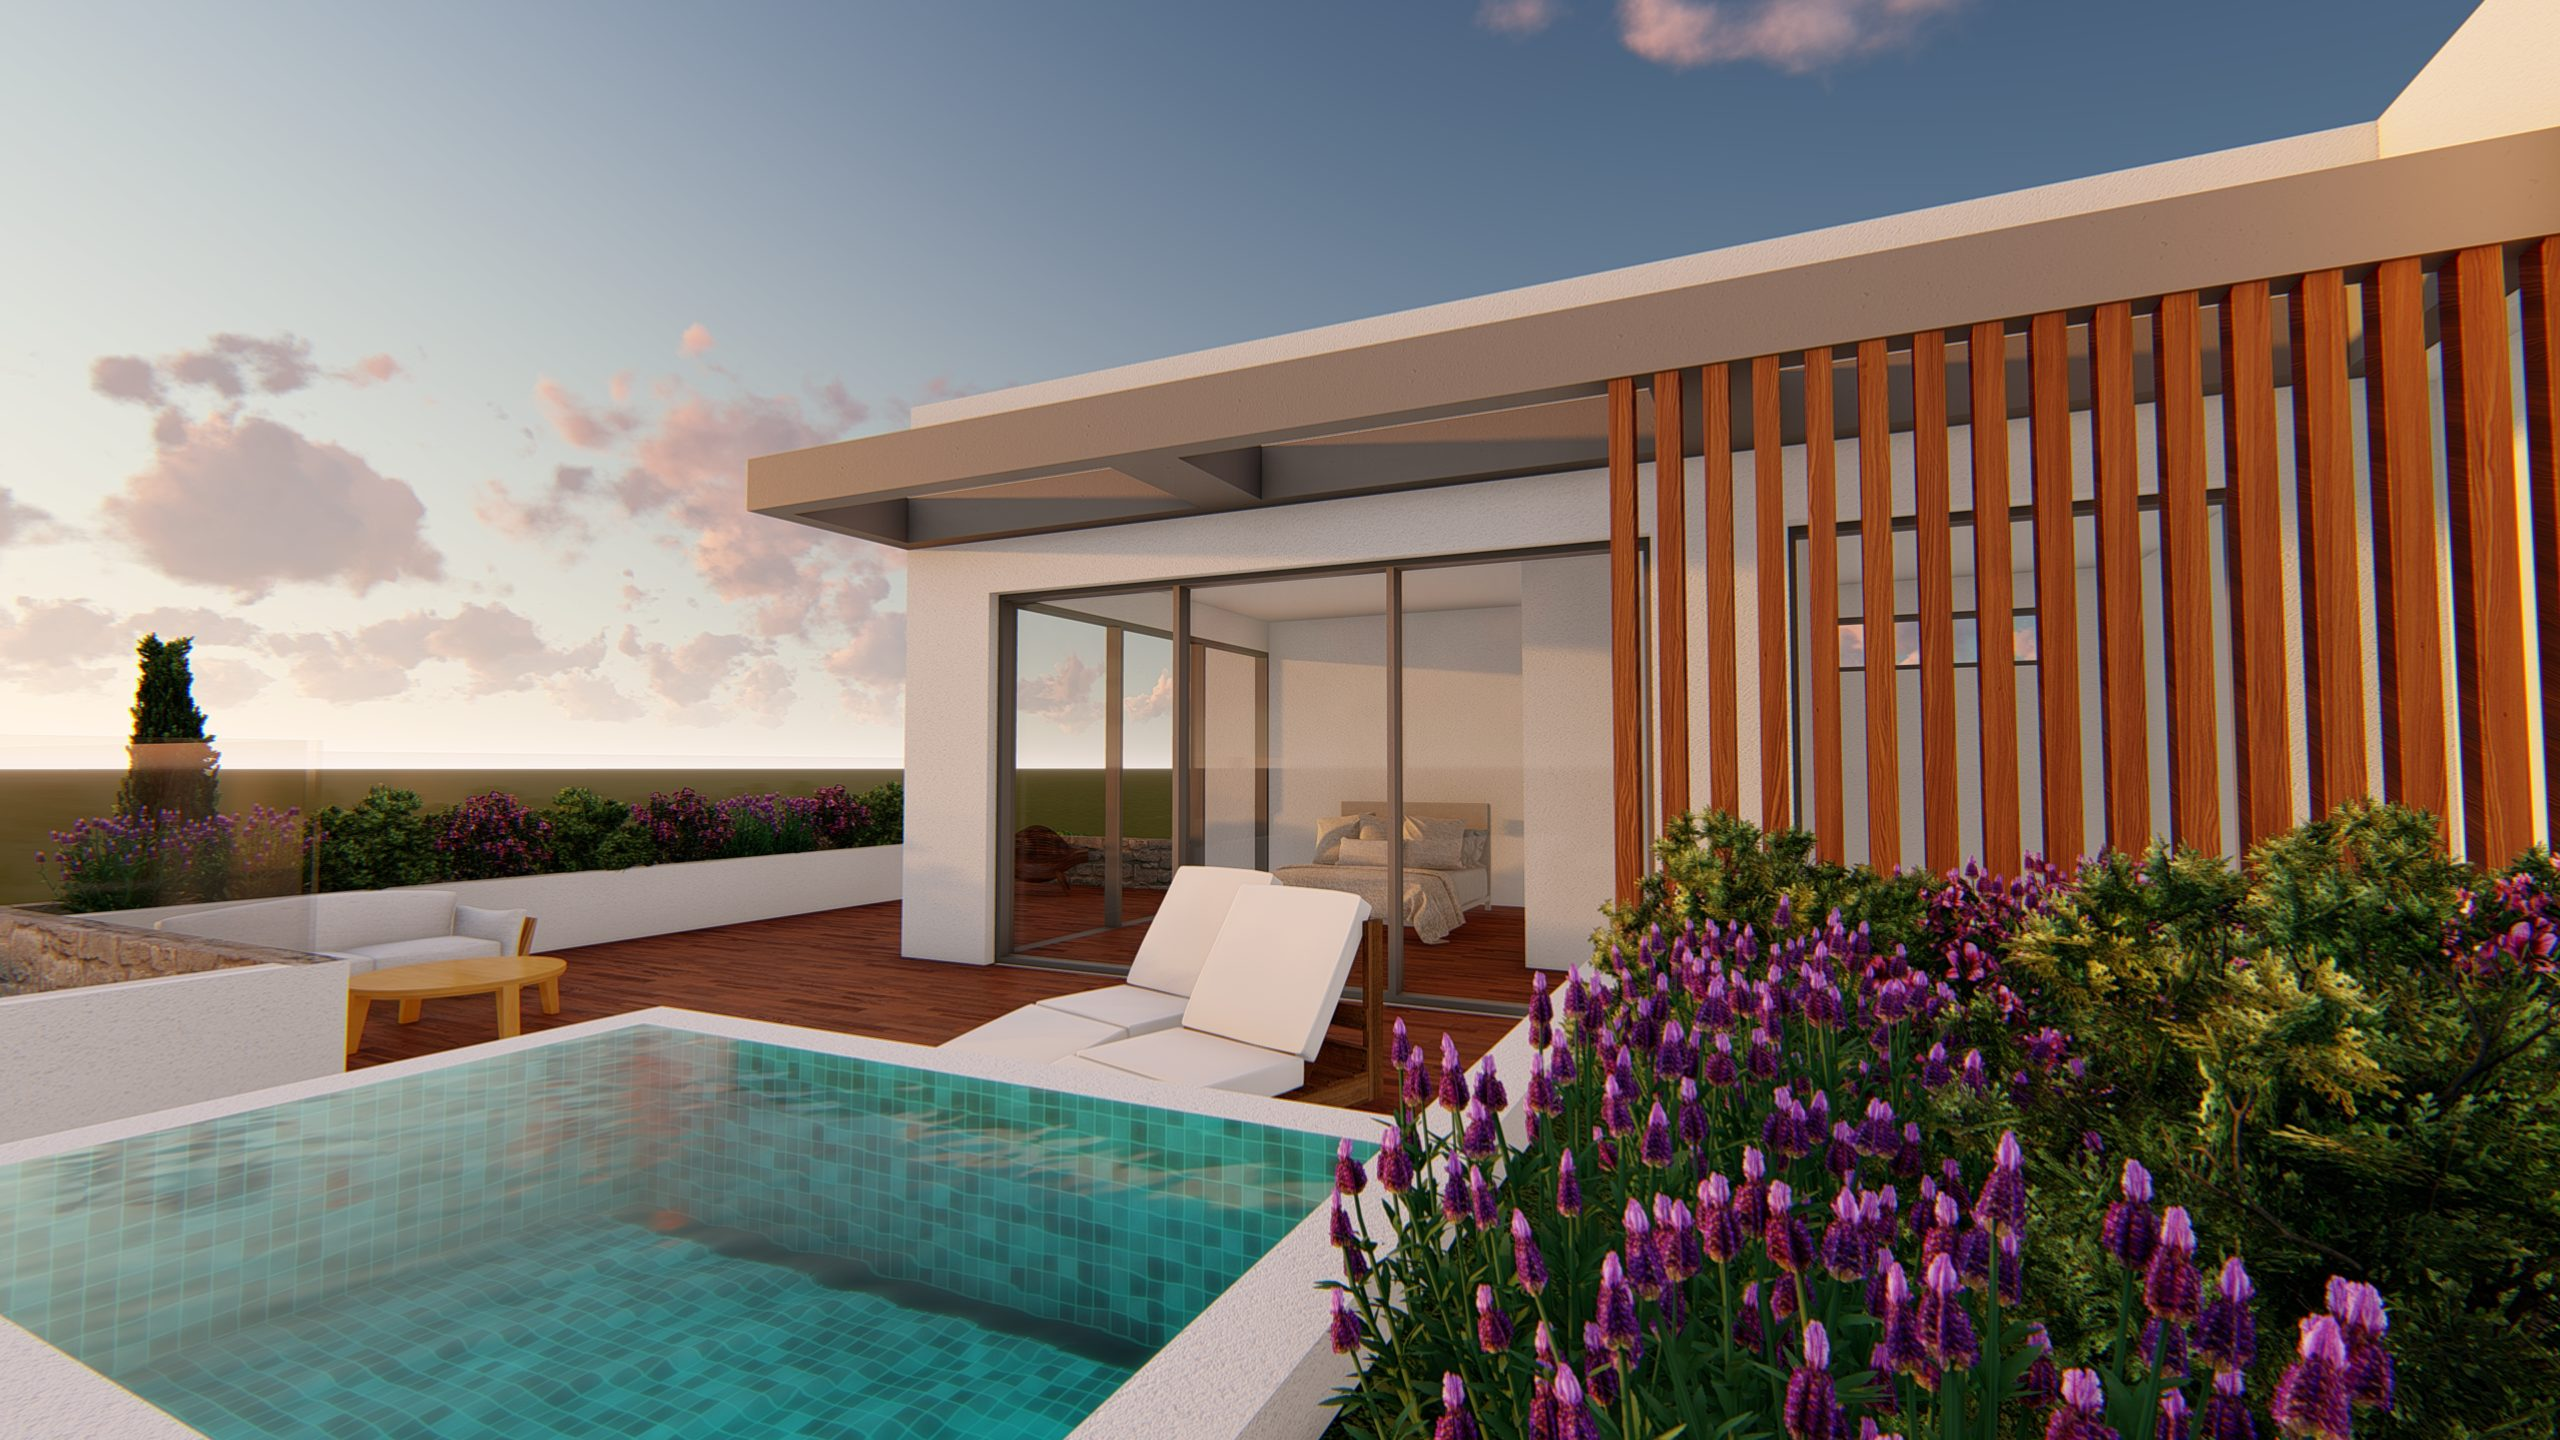 4 Beds Seafront Luxury Villa | Seacaves